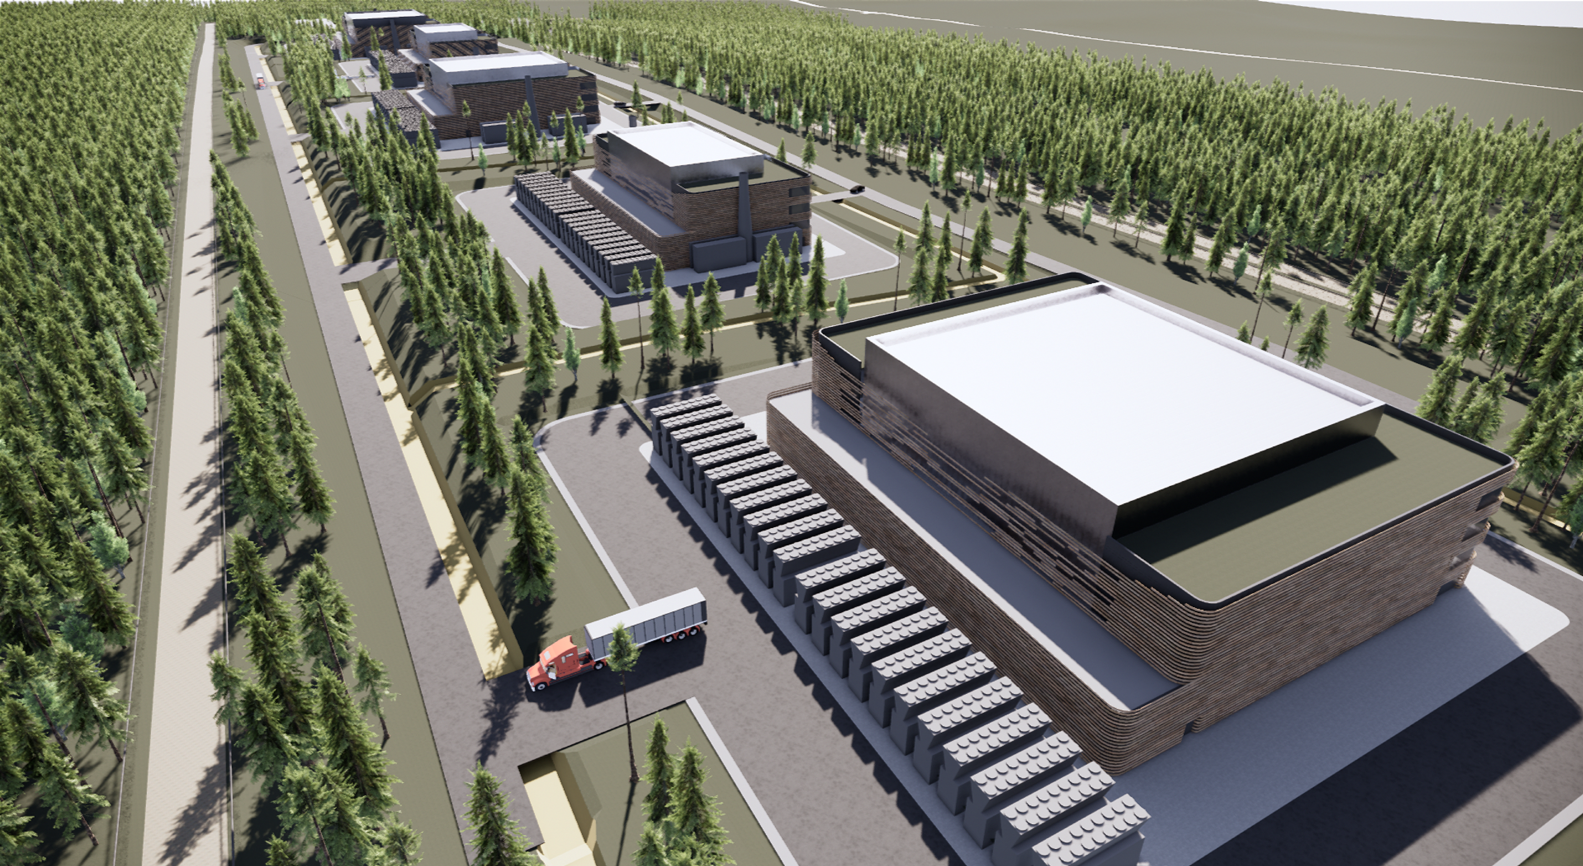 NDC to build 100% green data center in joint venture with Skellefteå Kraft